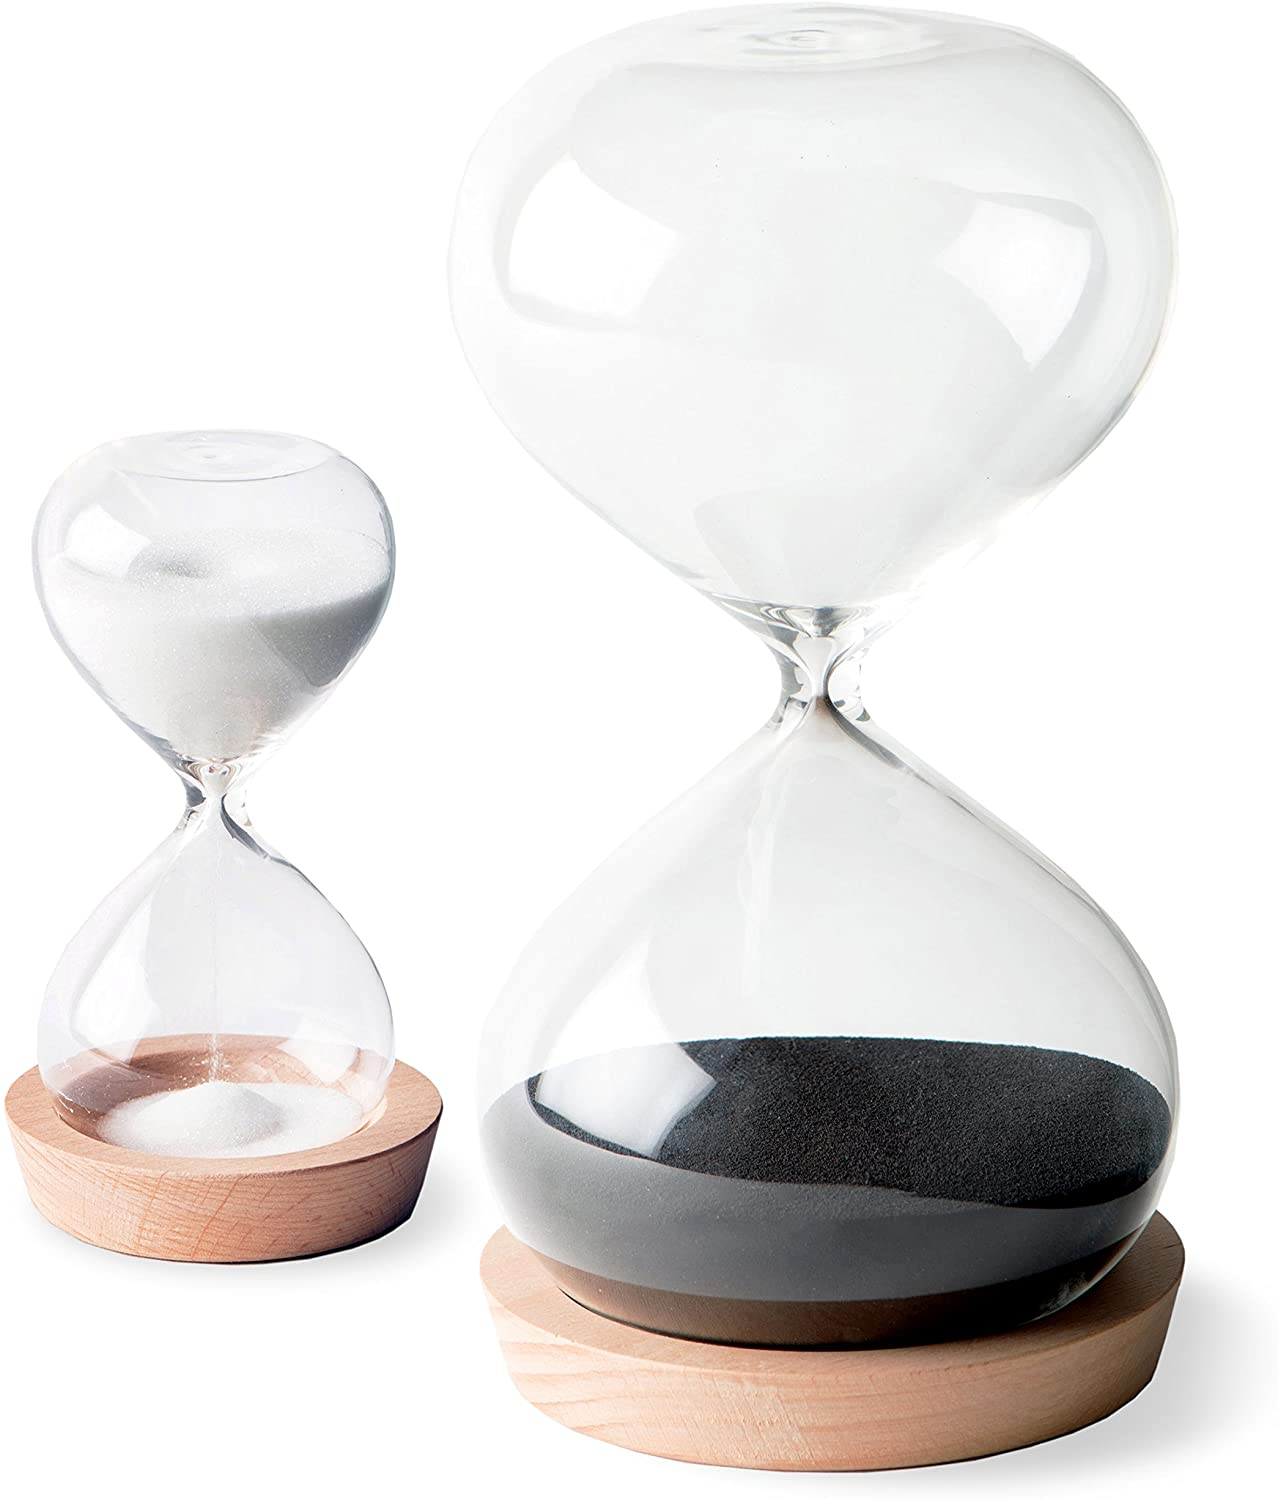 A picture of   OrgaNice Hourglass Sand Timer - 30 Minute & 5 Minute Timer Set to better elaborate 'Best Hourglass clocks 2020""